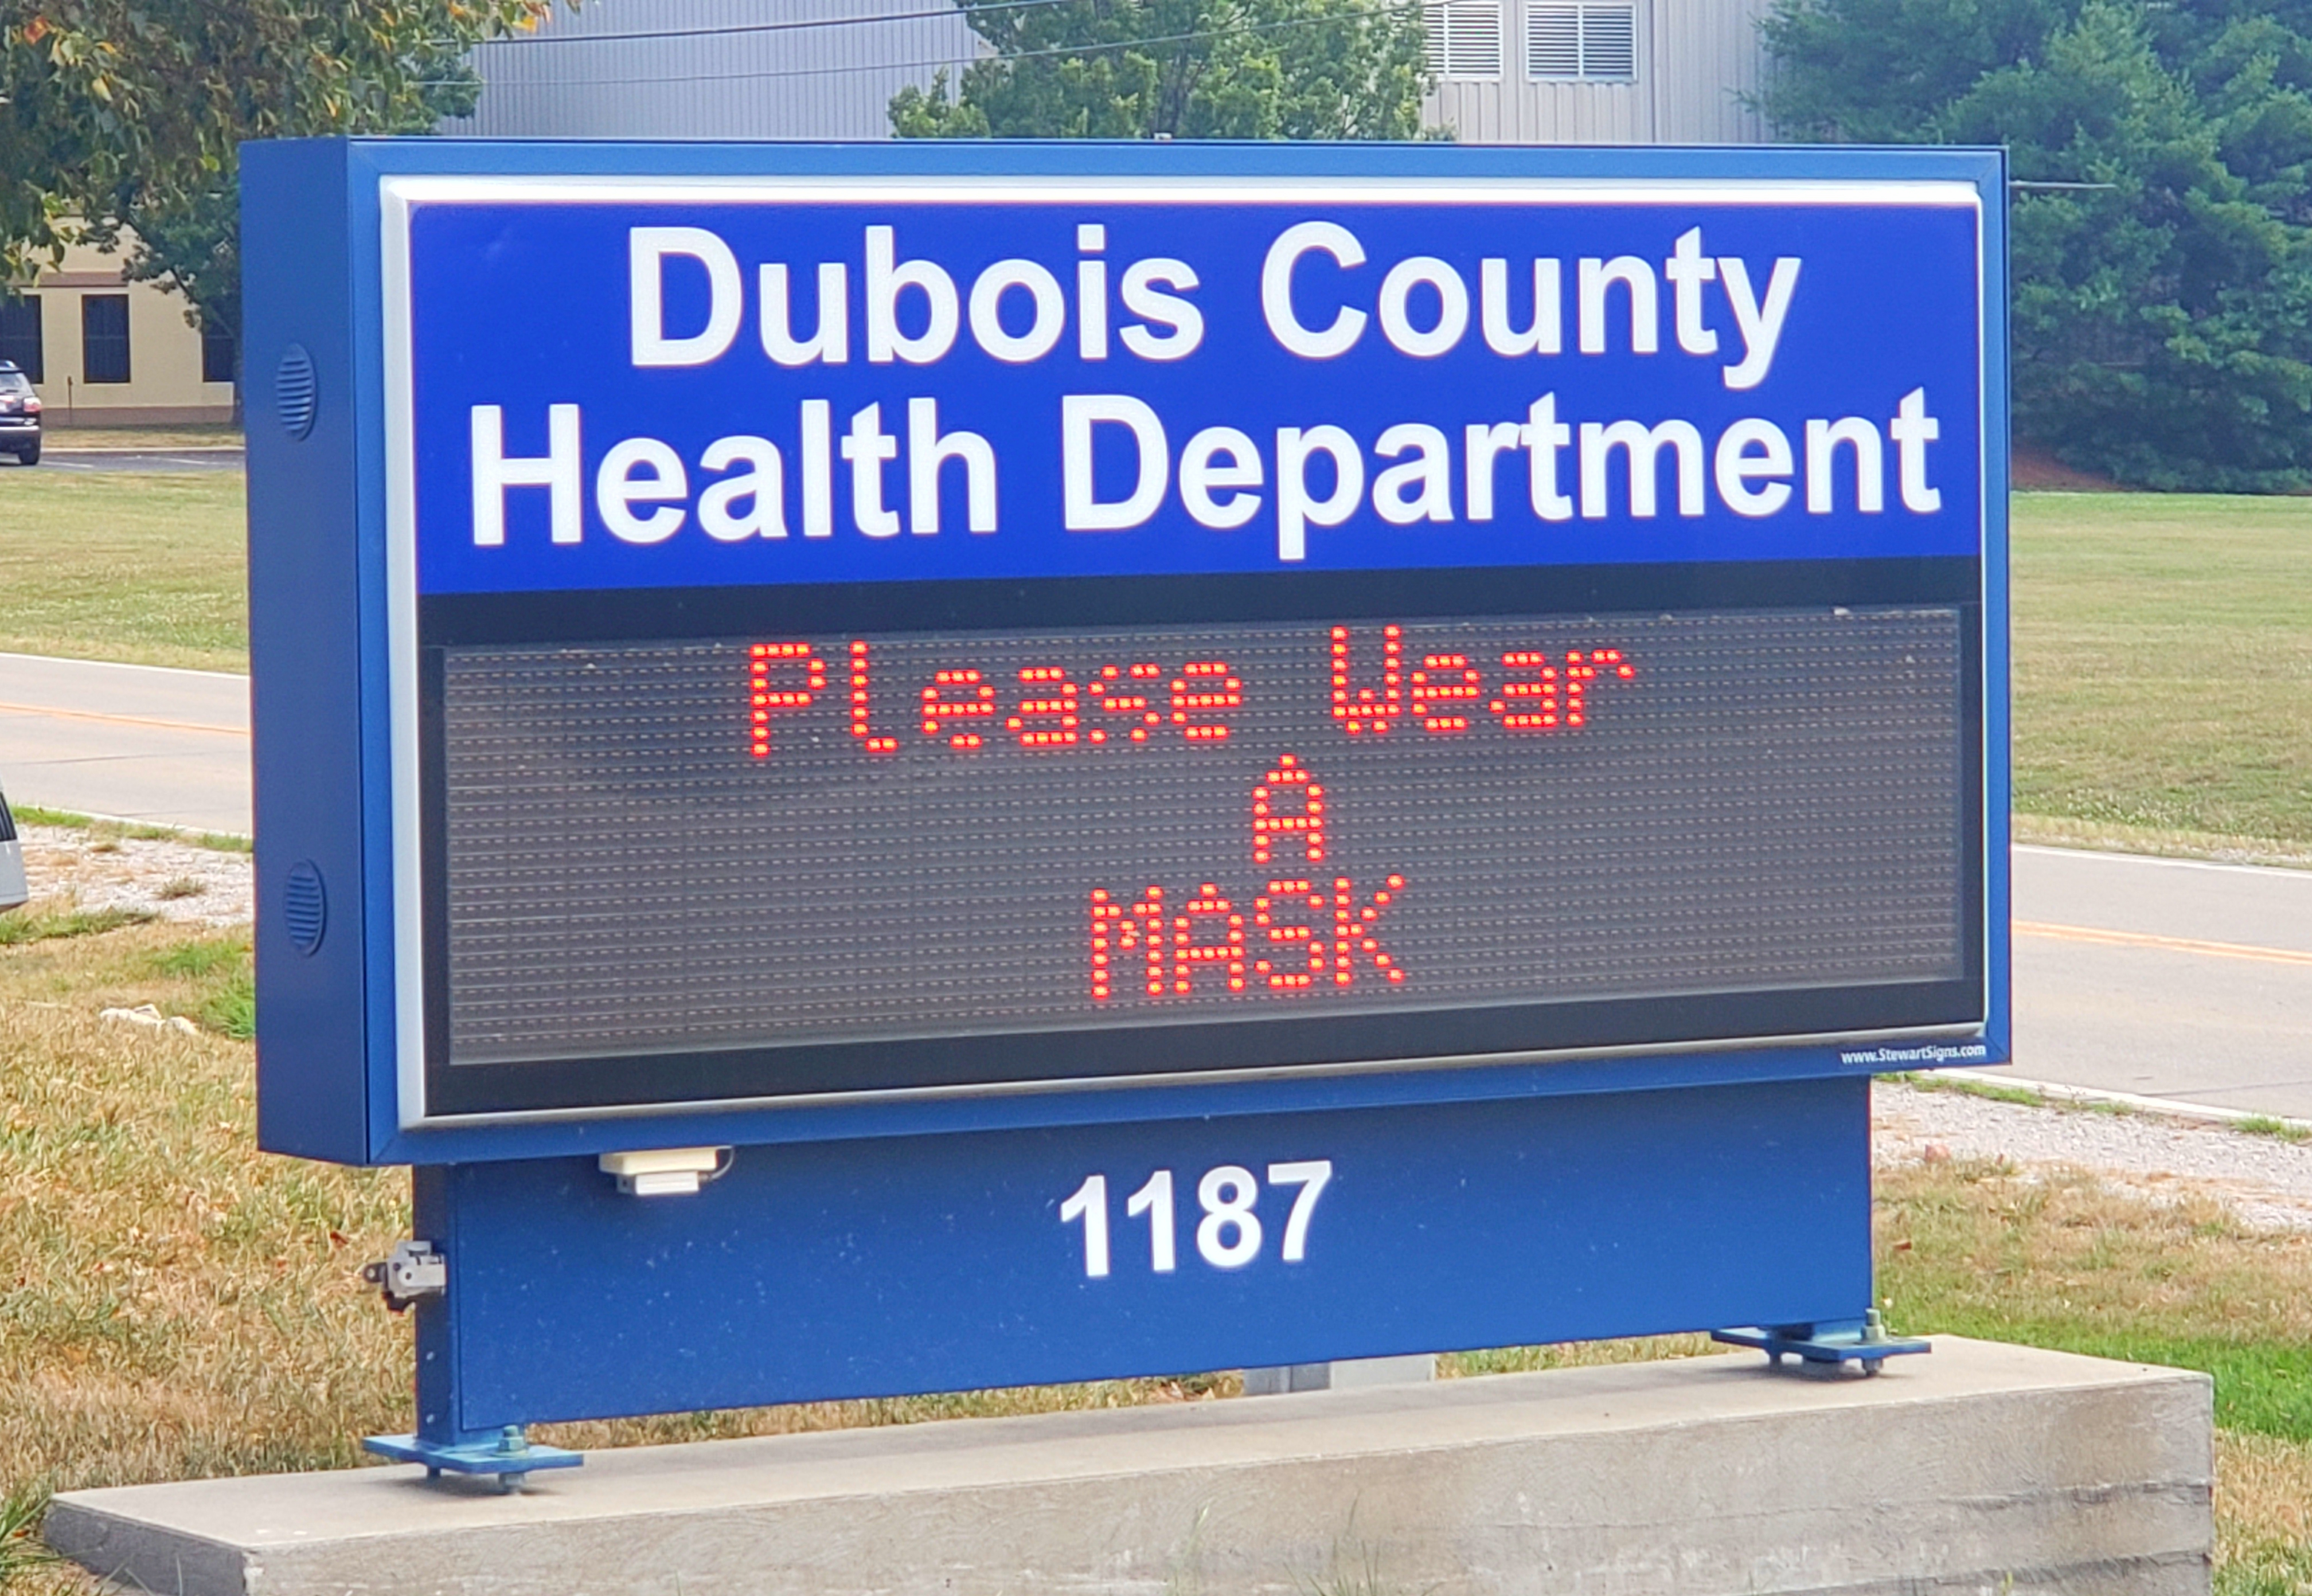 41 New COVID Cases Reported in Dubois County Over the Weekend, Positivity Rate is Lower